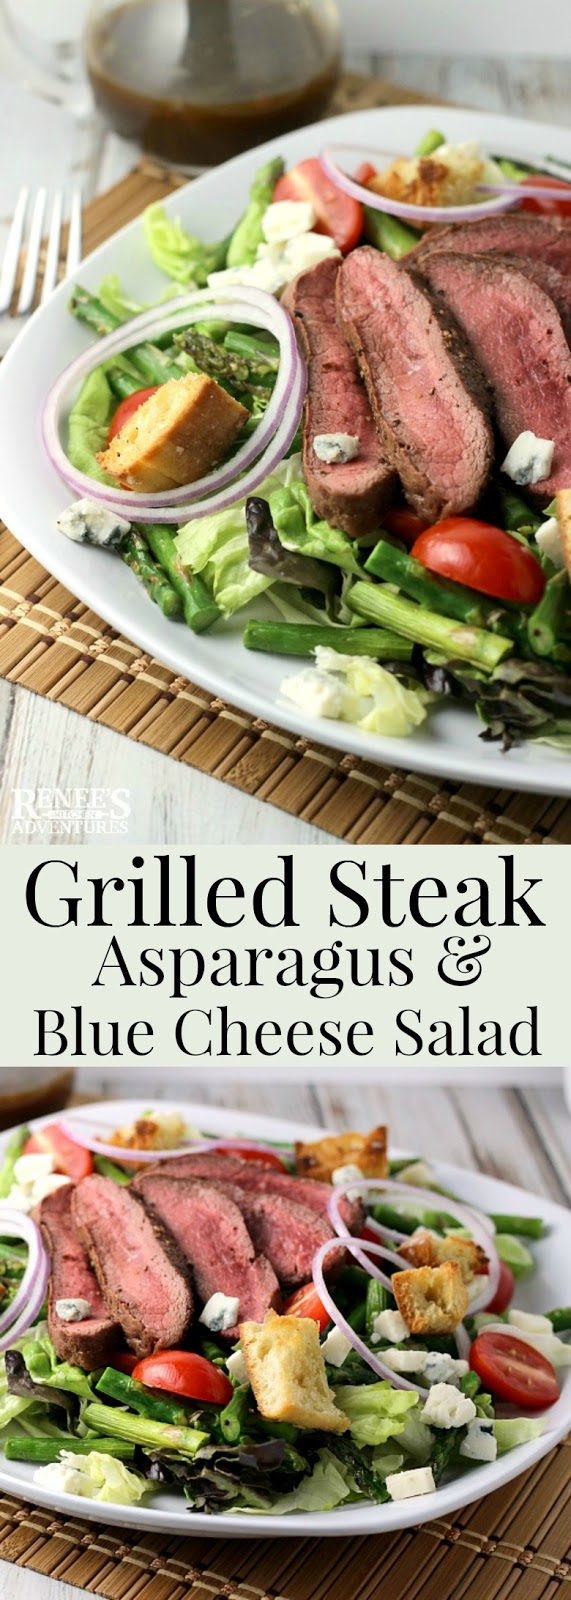 Grilled Steak, Asparagus, and Blue Cheese Salad | Renee's Kitchen Adventures - easy main course salad recipe for steak, fresh asparagus, blue cheese, tomatoes, red onions, and ciabatta croutons. Perfect spring dinner recipe.